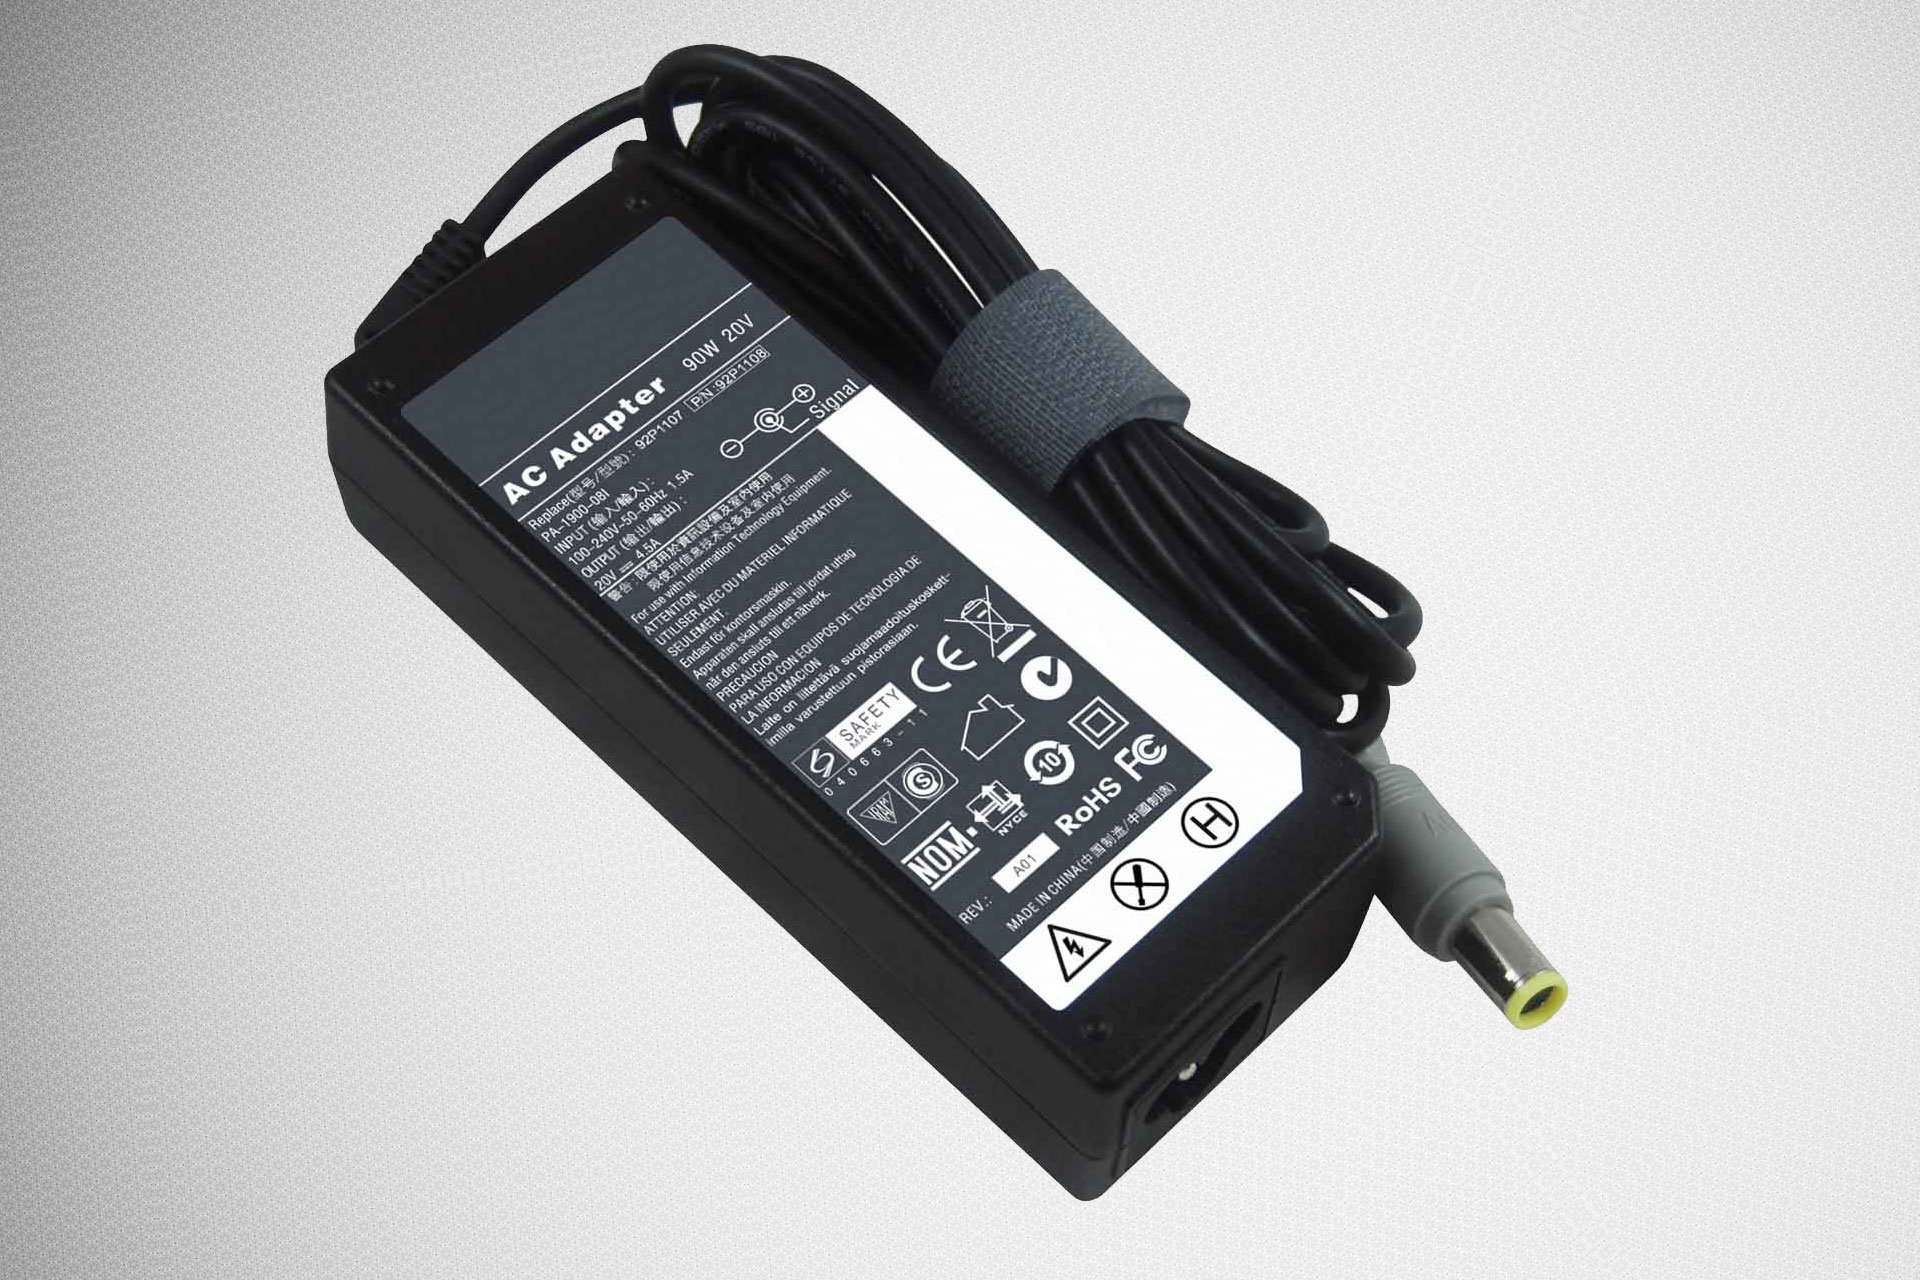 laptop adapter price in trichy